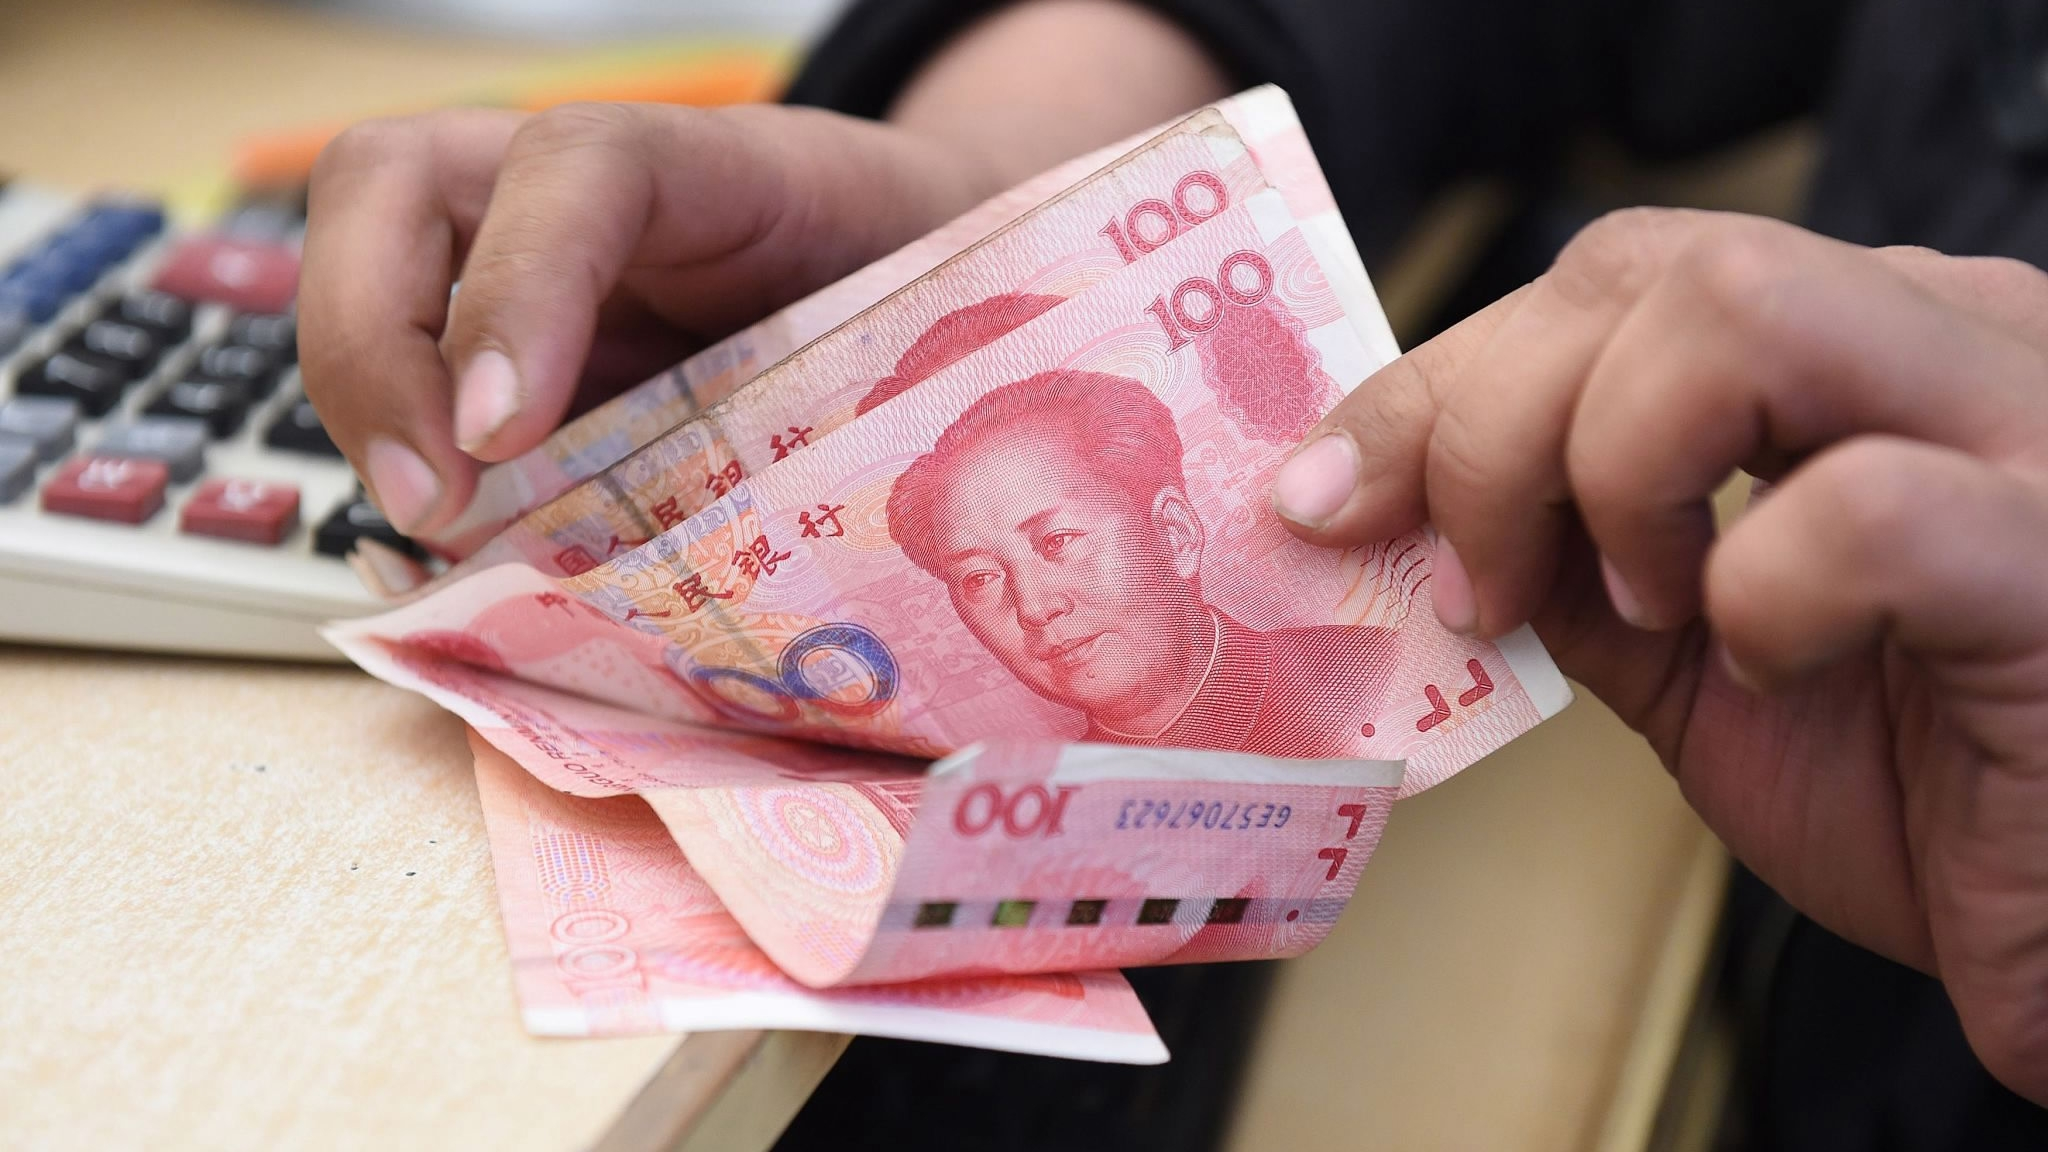 Beijing to launch loan renewal service for small businesses citywide